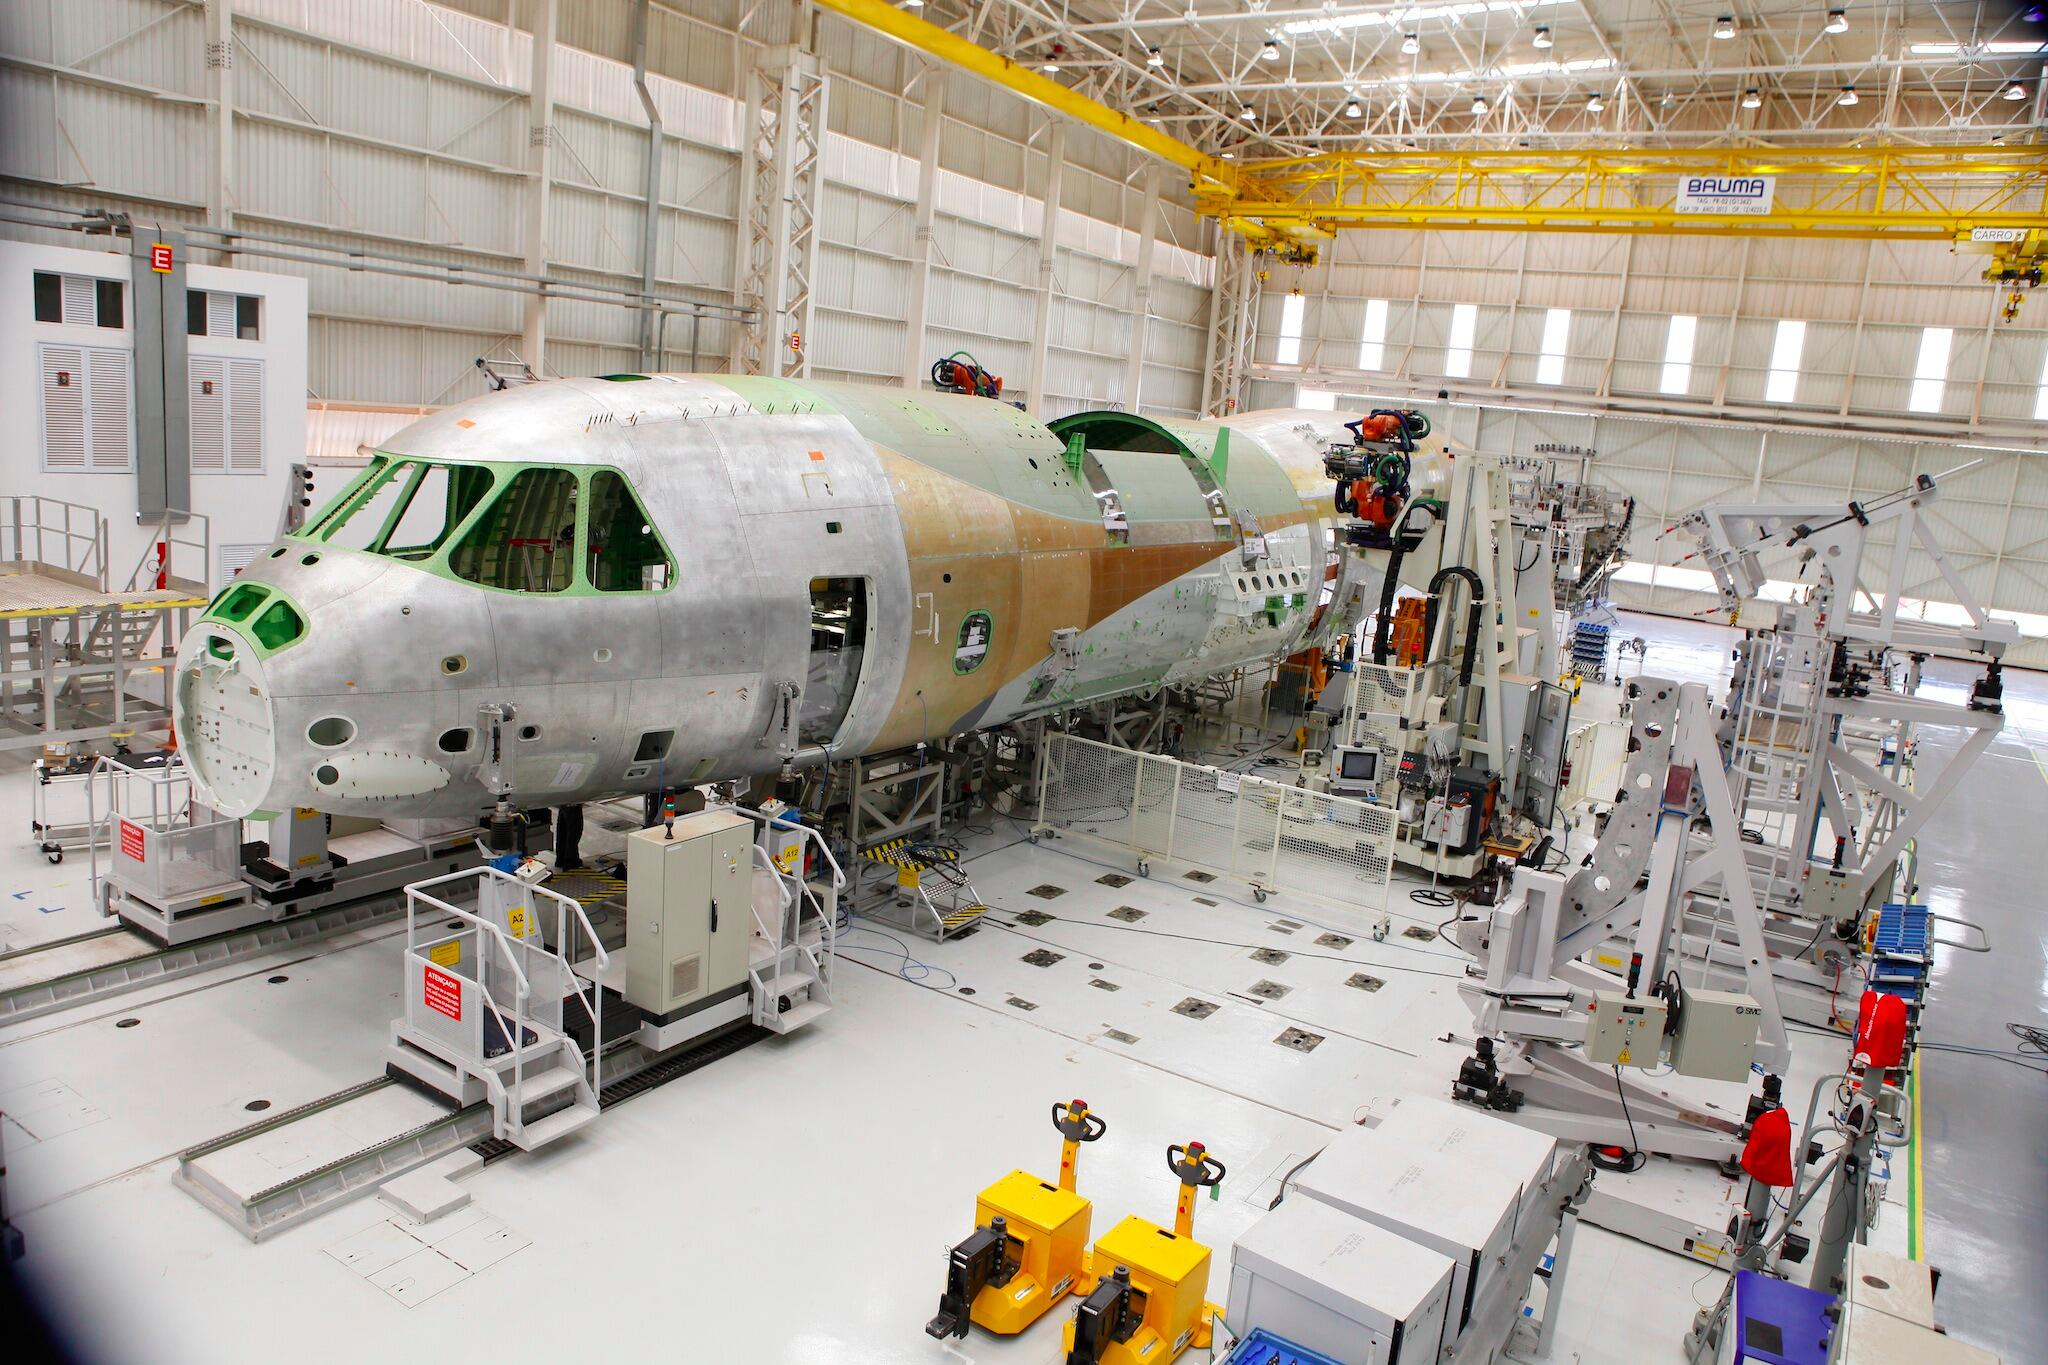 Embraer C-390. KC-390 - Page 4 BoFuKZtCUAMMkbq